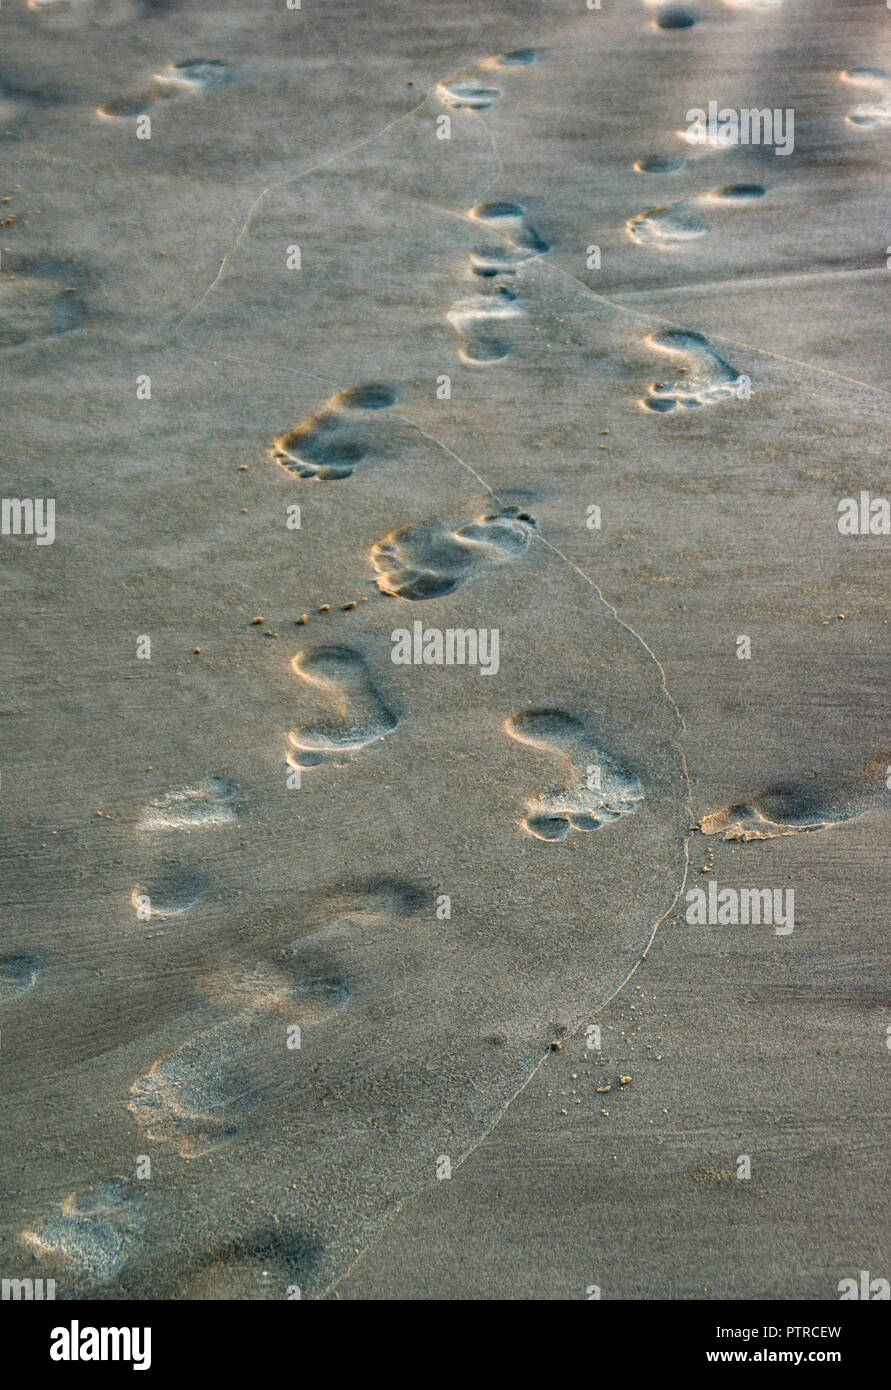 Footprints in the sand after a day at the beach in Myrtle Beach, South Carolina - Stock Image